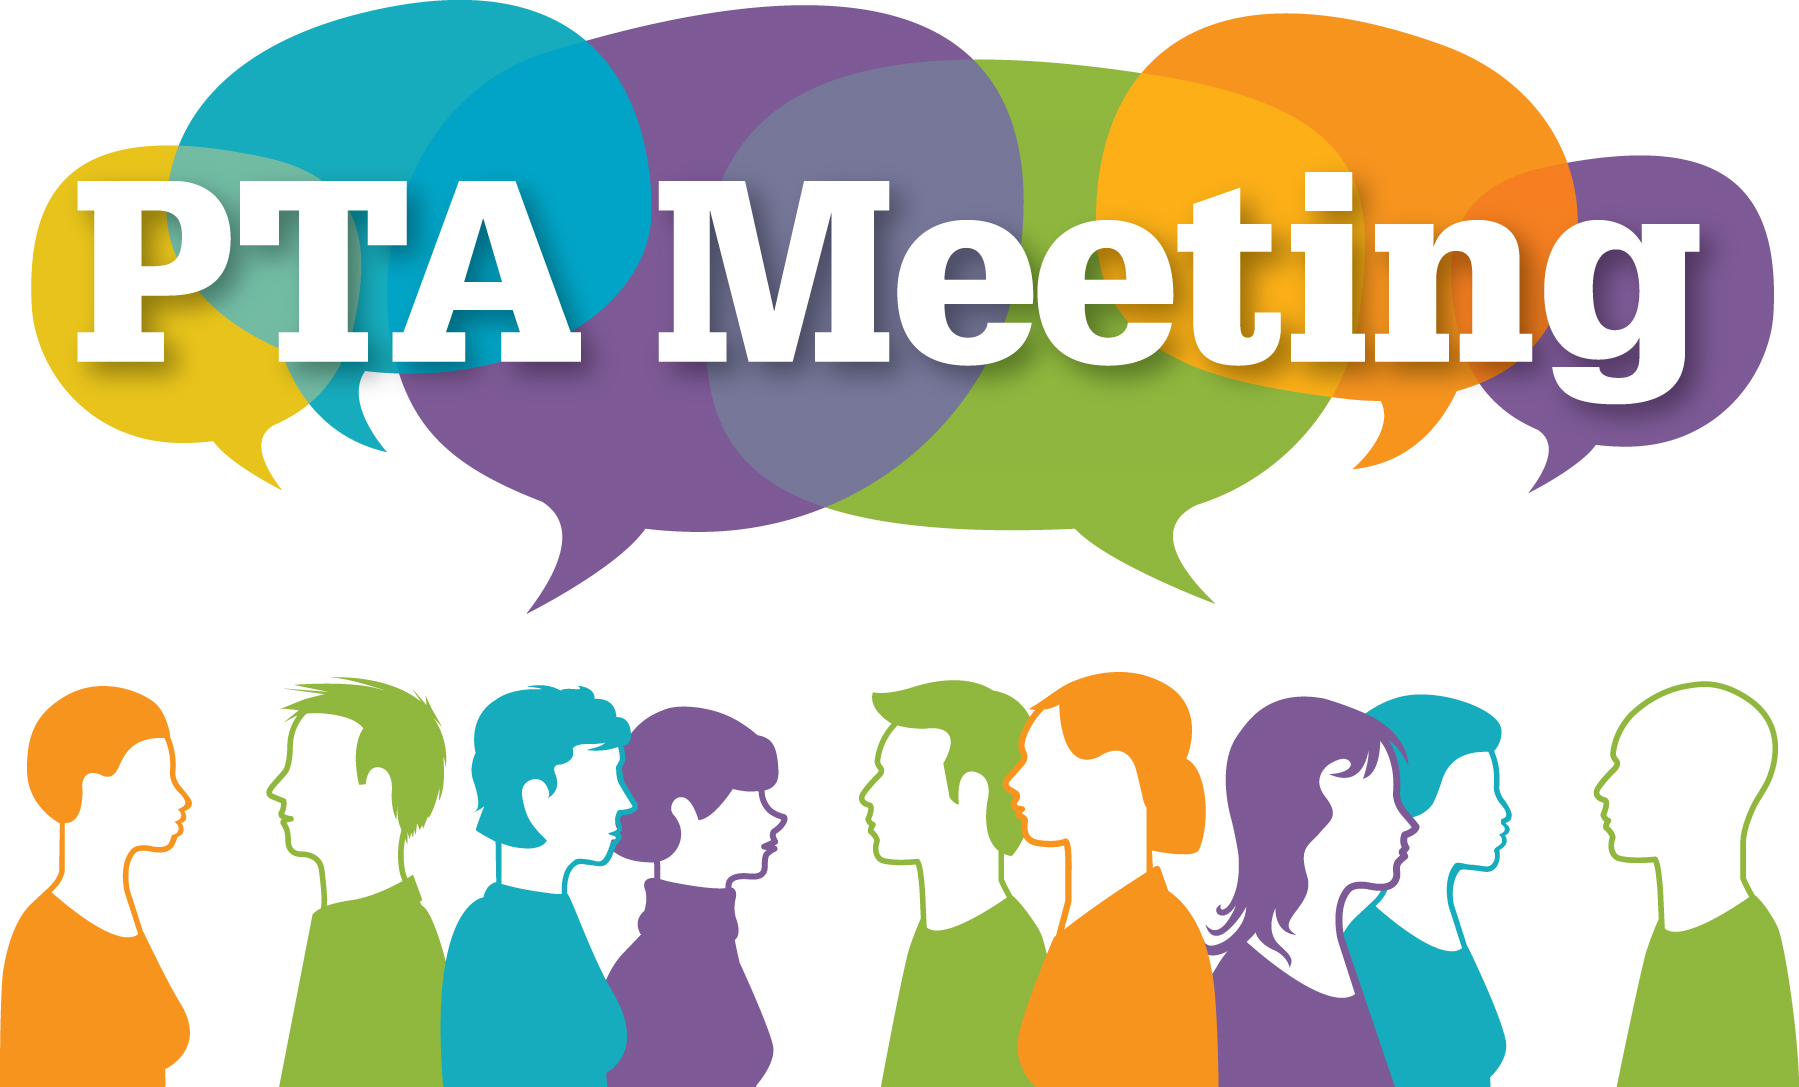 10 Things Every PTA Meeting Should Cover - parentalk